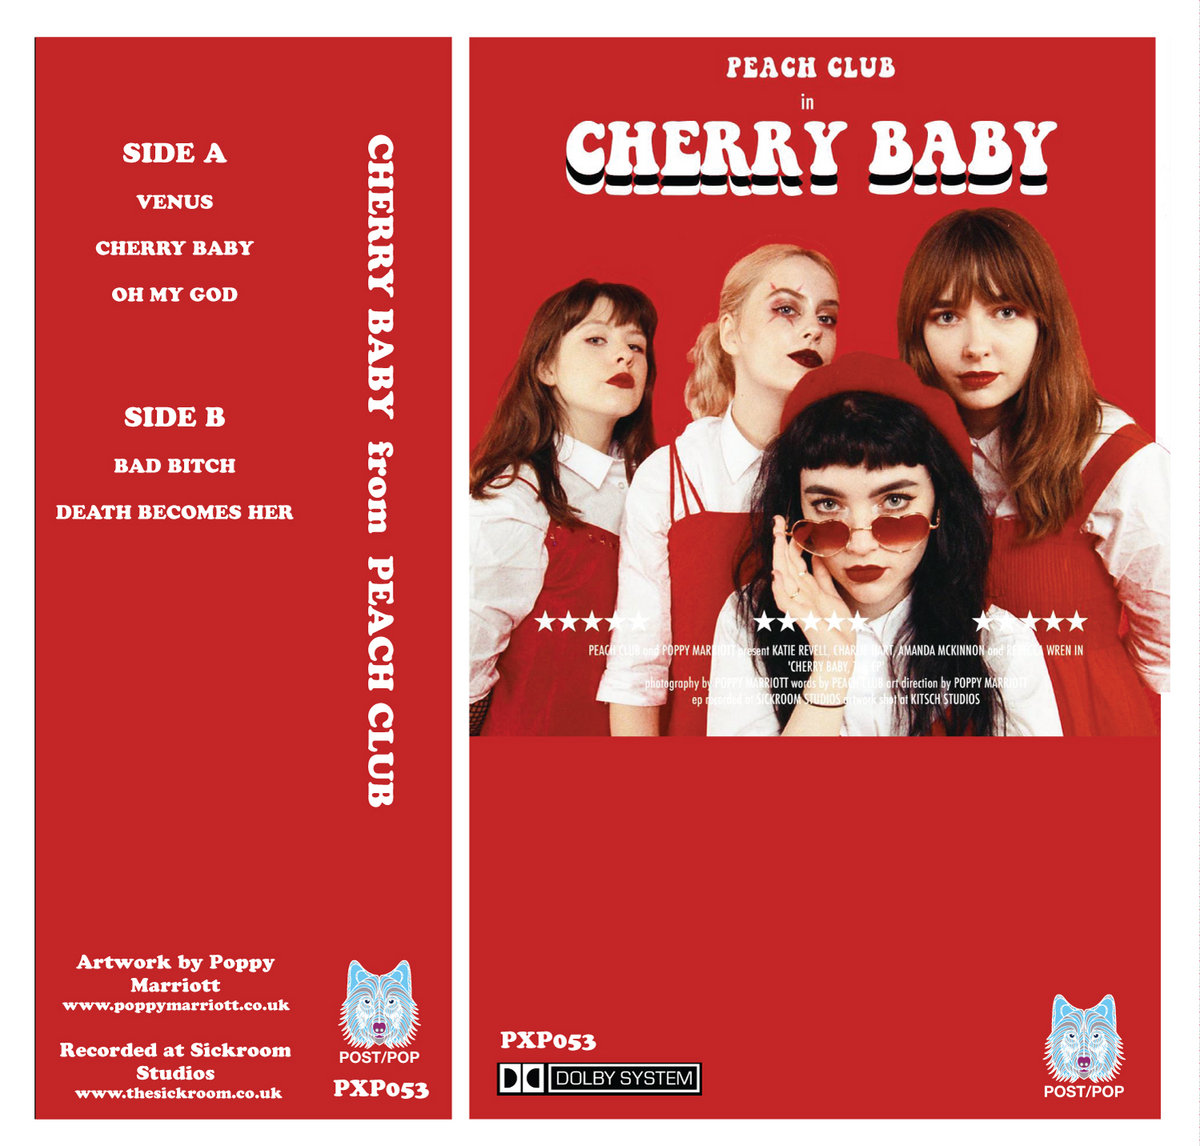 PEACH CLUB - CHERRY BABY (PXP053)